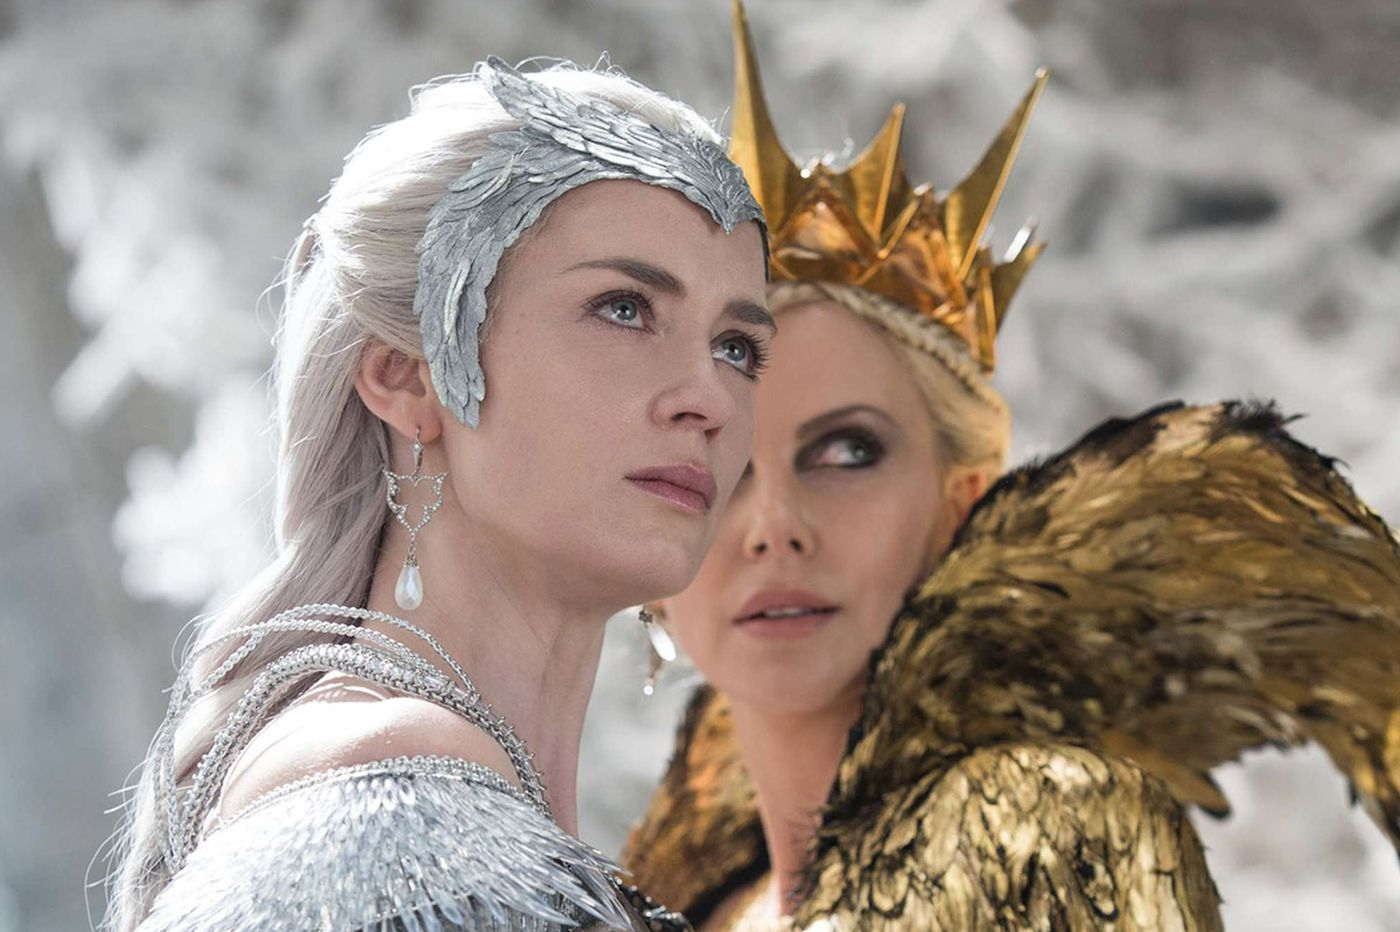 'The Huntsman: Winter's War': A femme-centric drama fantasy